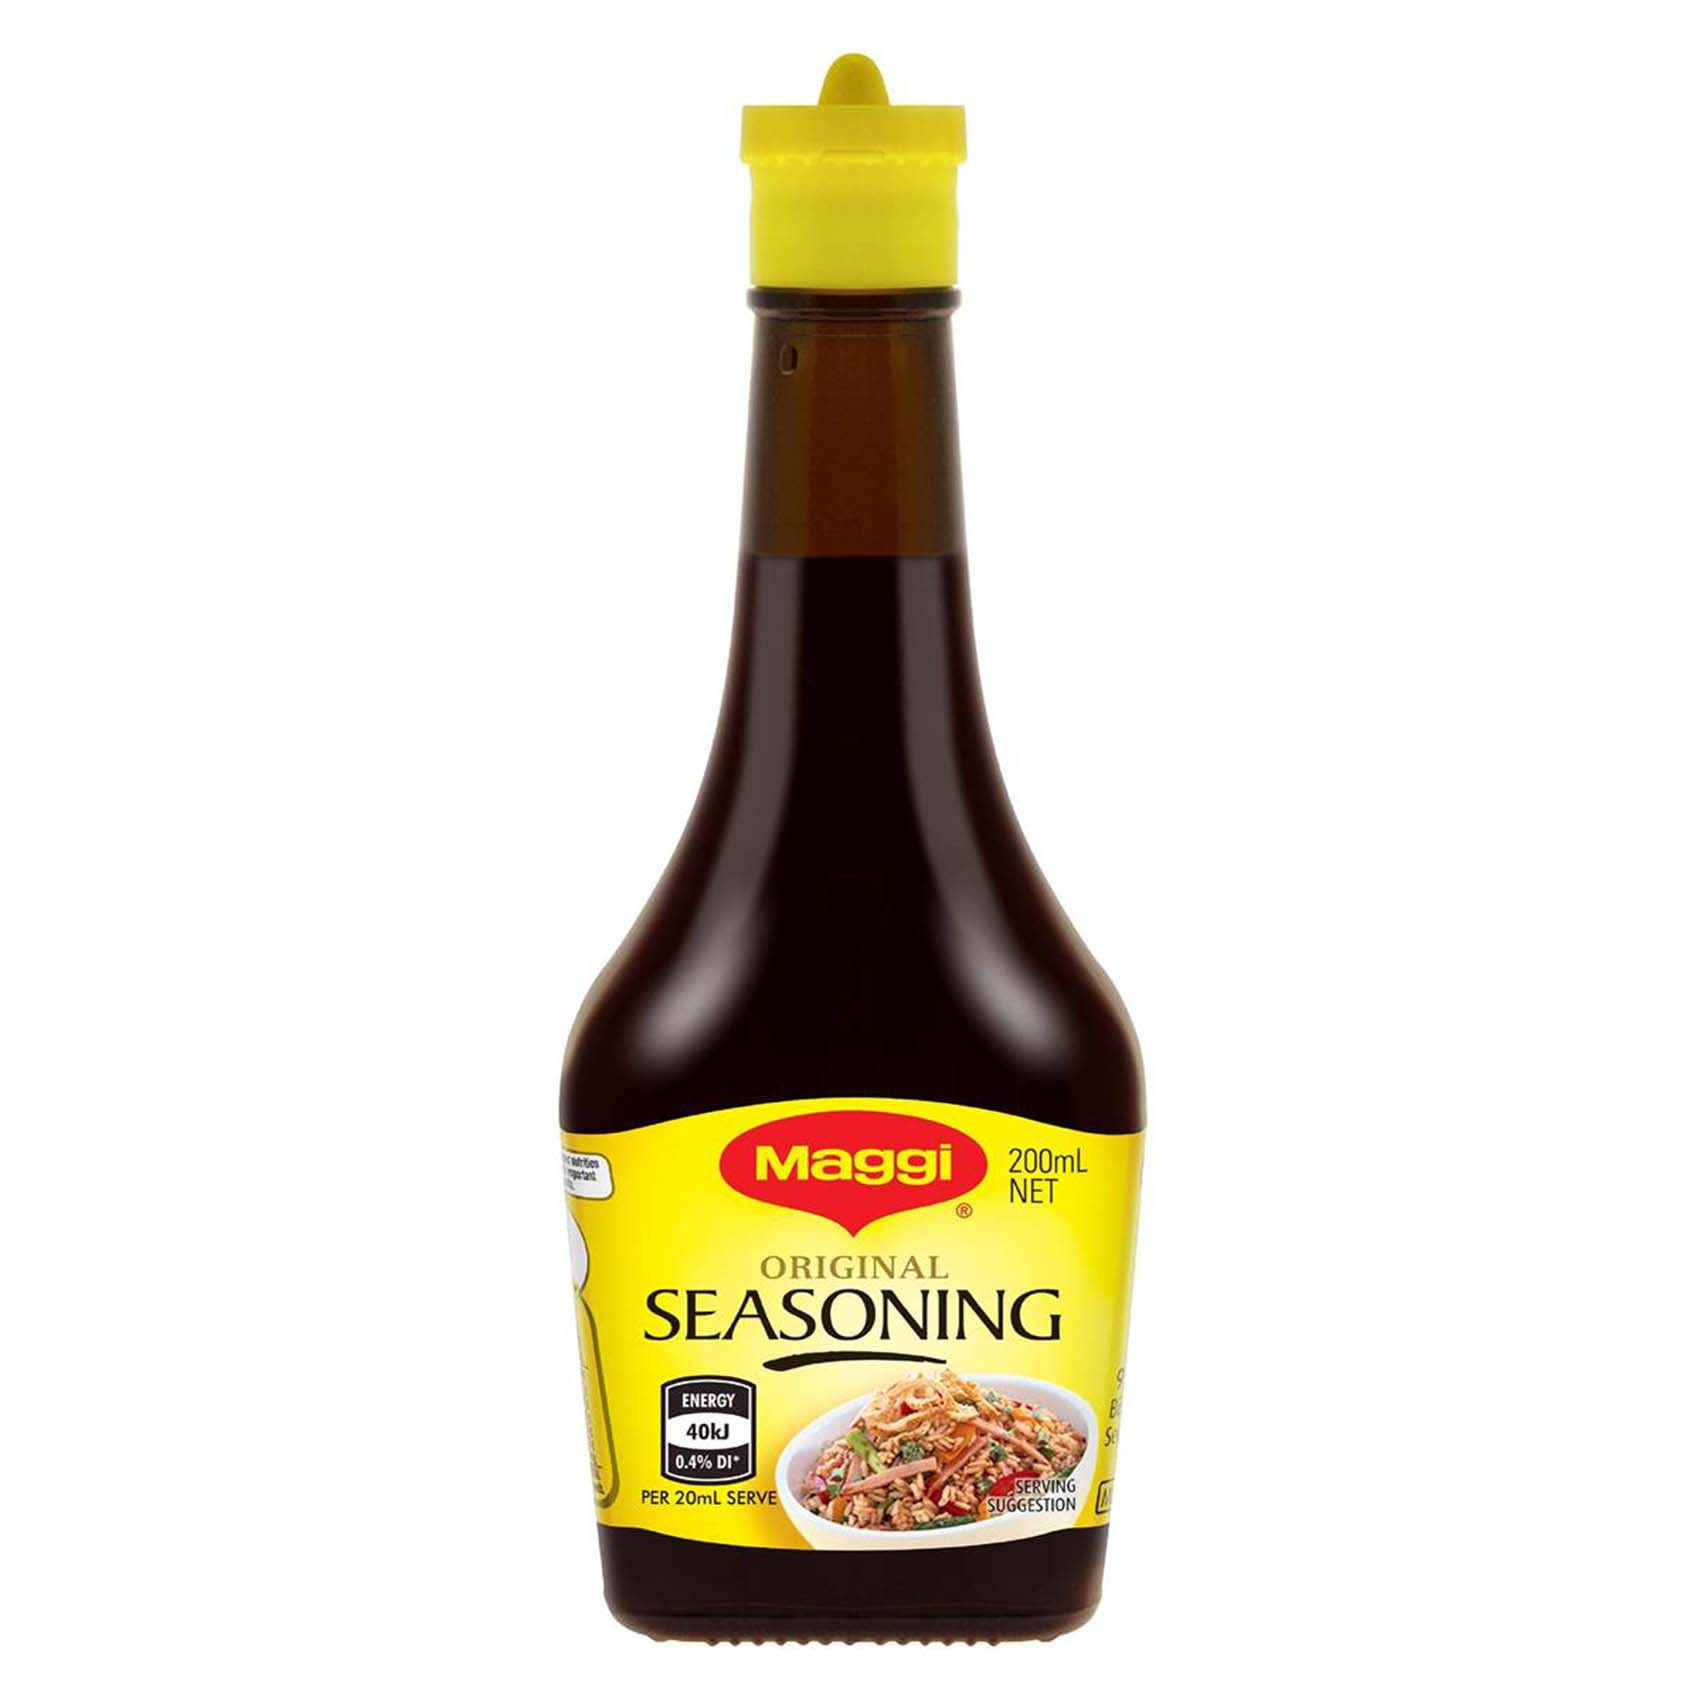 MAGGI SAUCE SEASONING 200ML